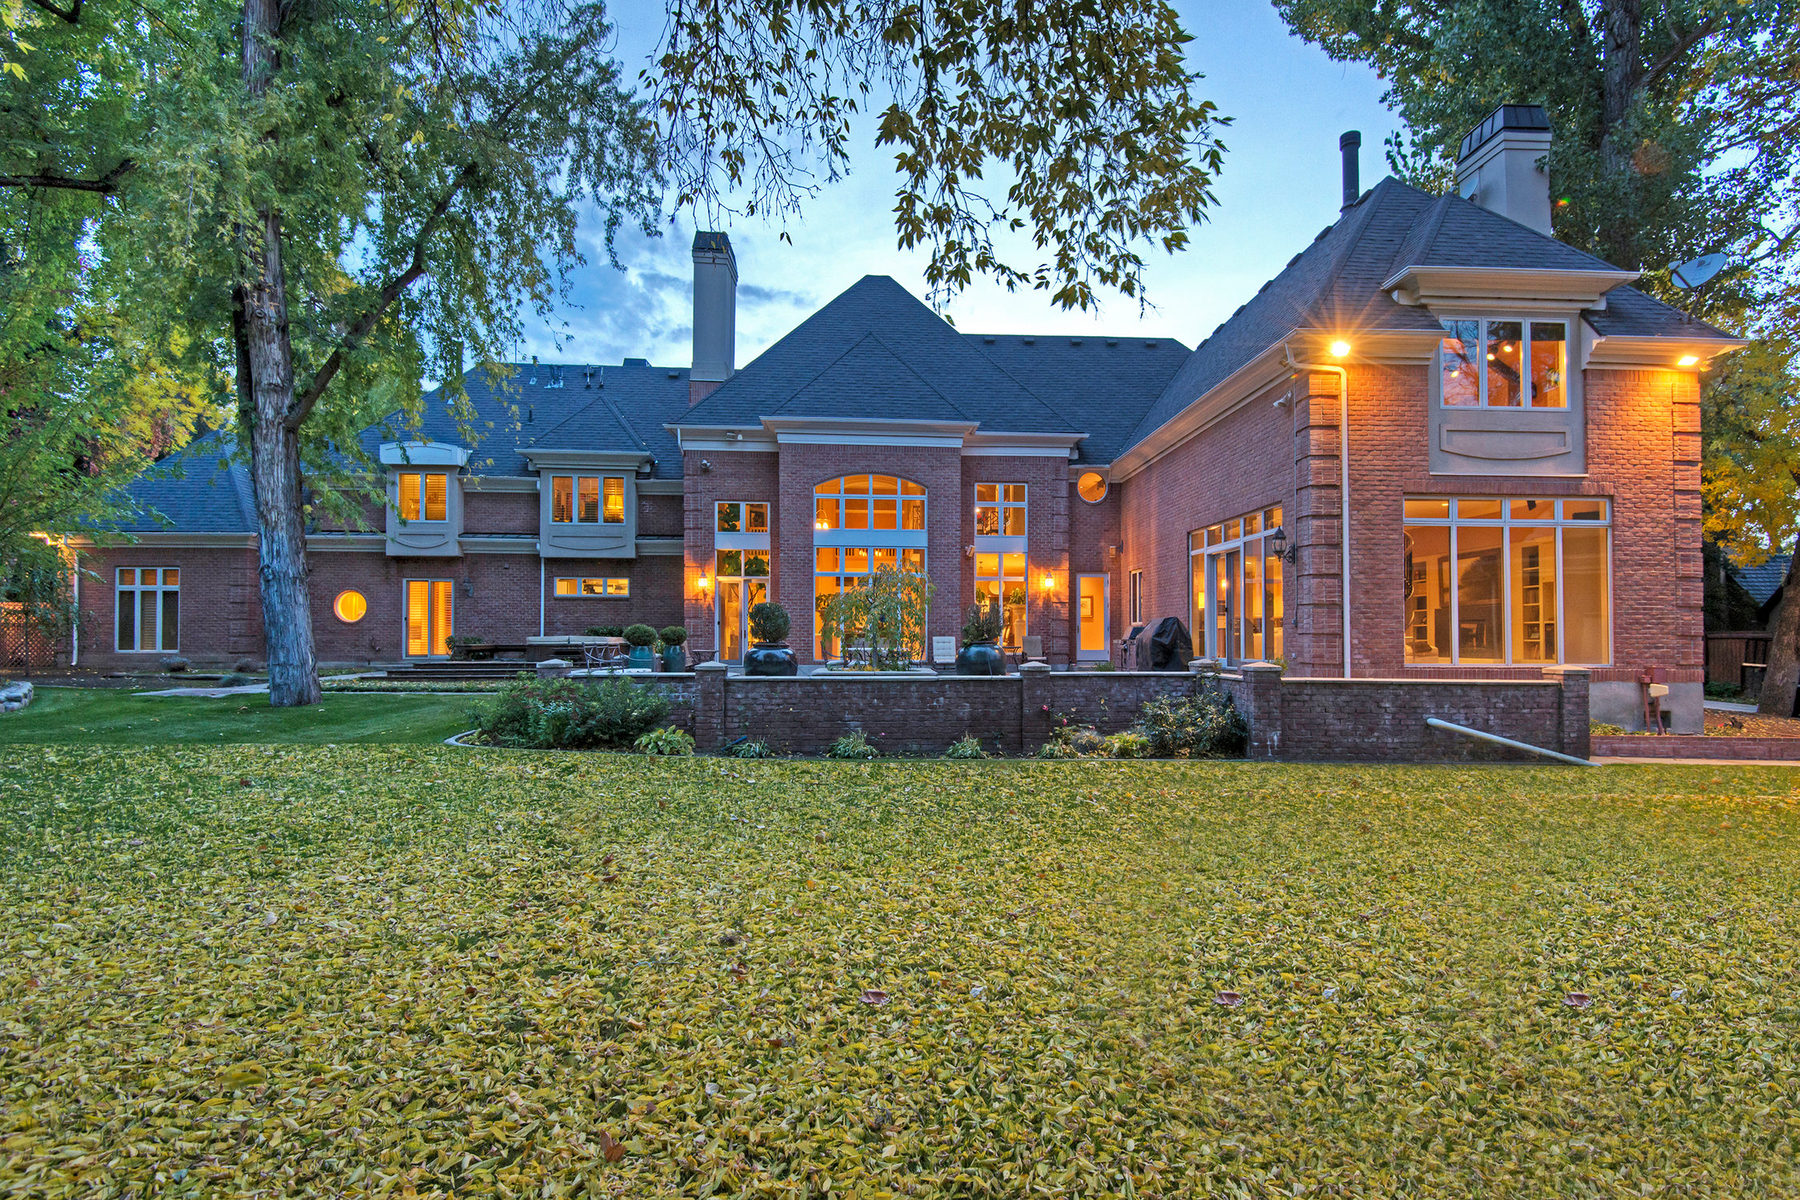 Maison unifamiliale pour l Vente à Stunning, Elegant Estate on Wooded Lot 5497 S Walker Estates Cir Salt Lake City, Utah, 84117 États-Unis